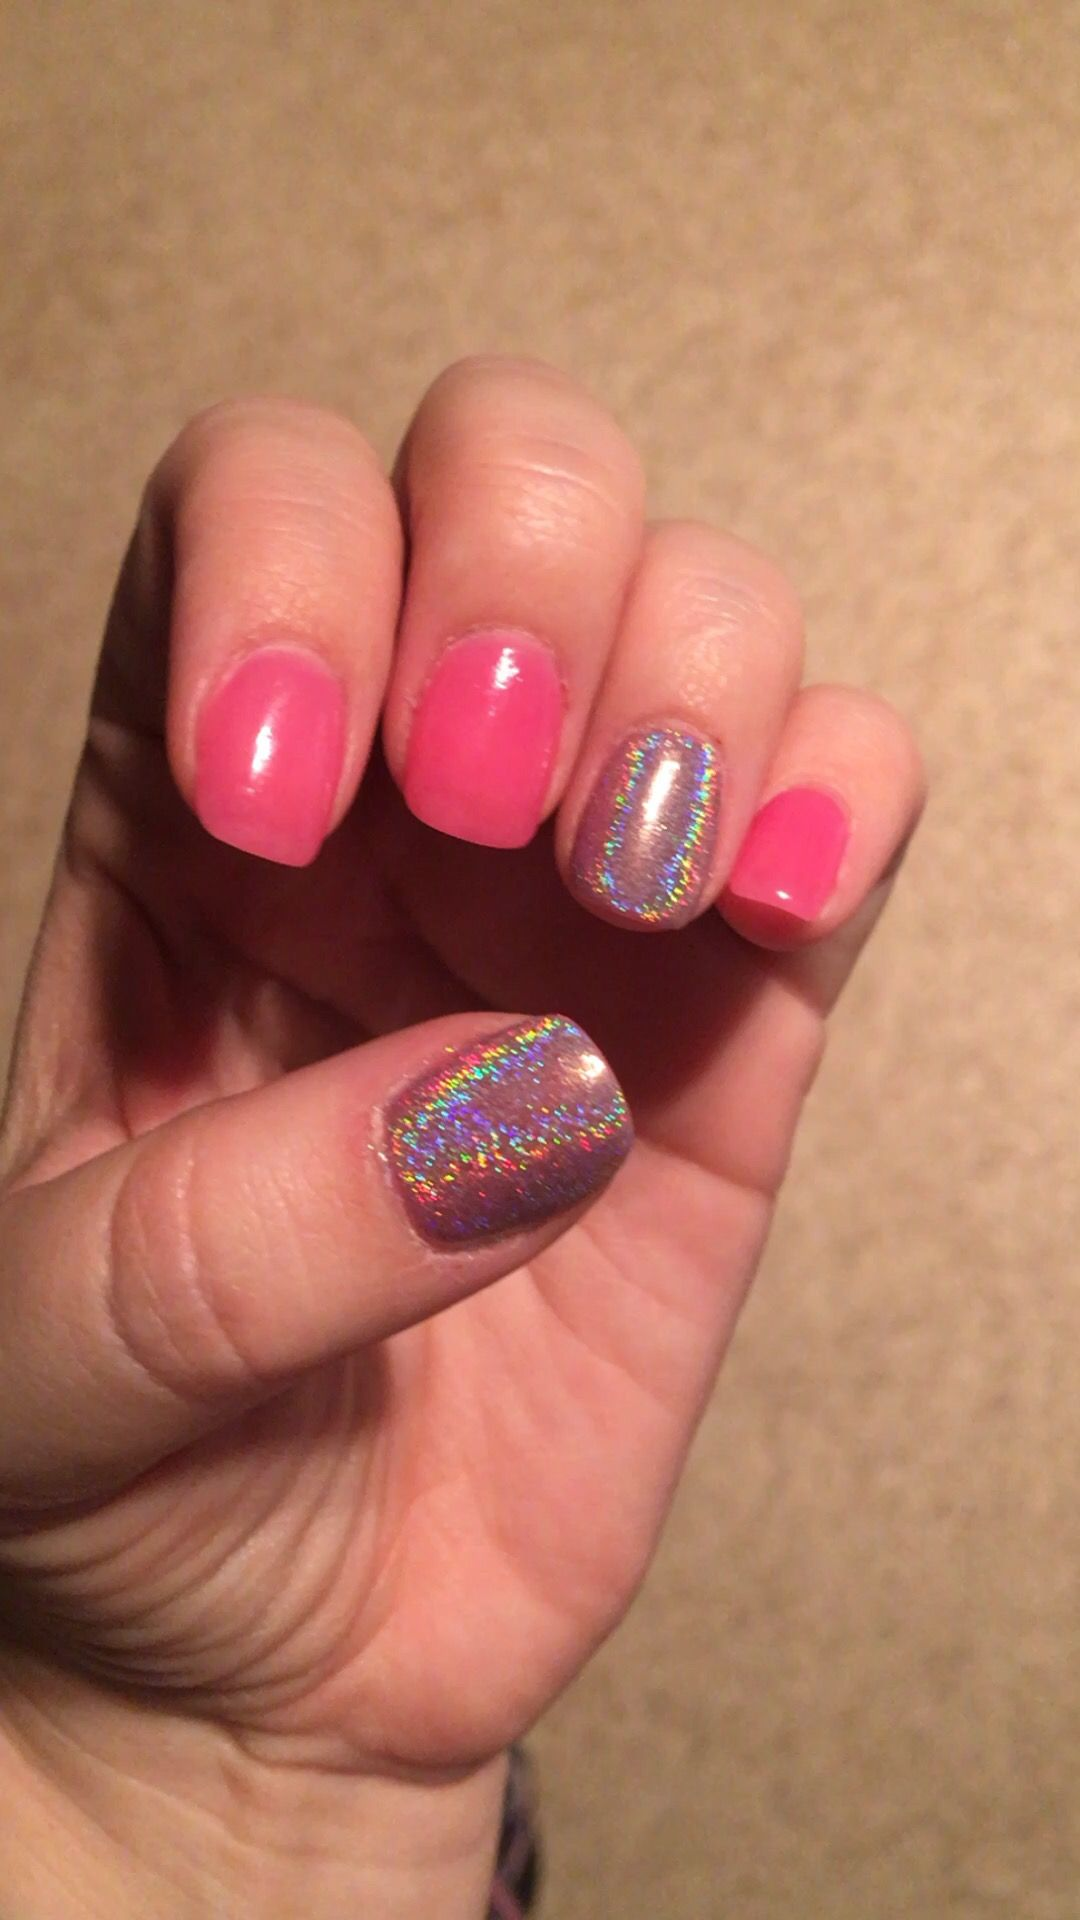 pink sns nails with accent rainbow